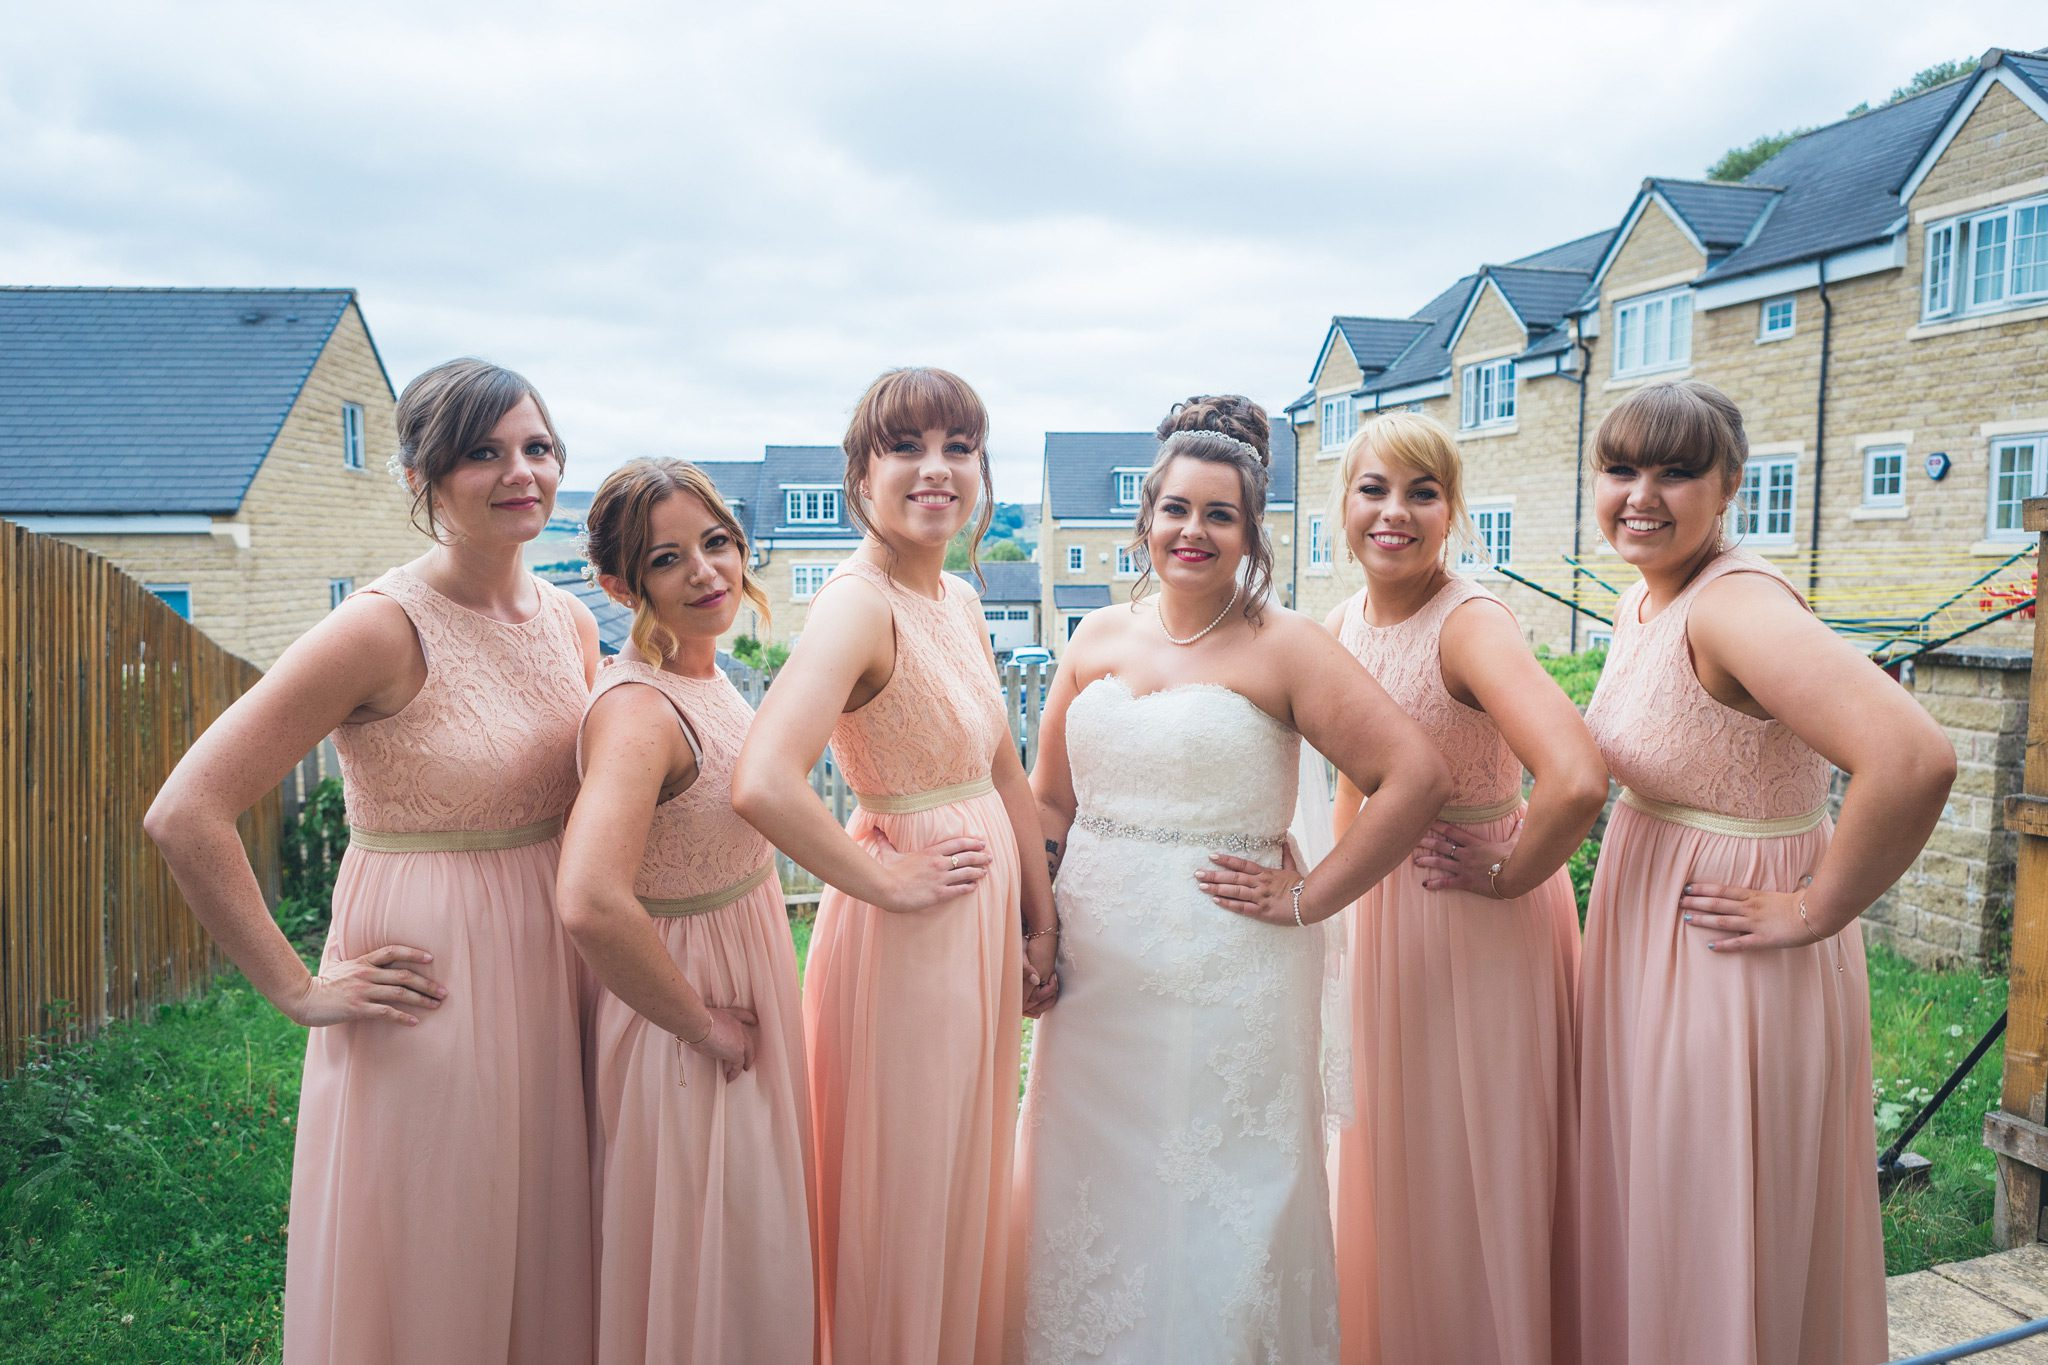 Bride and bridesmaids all dressed up